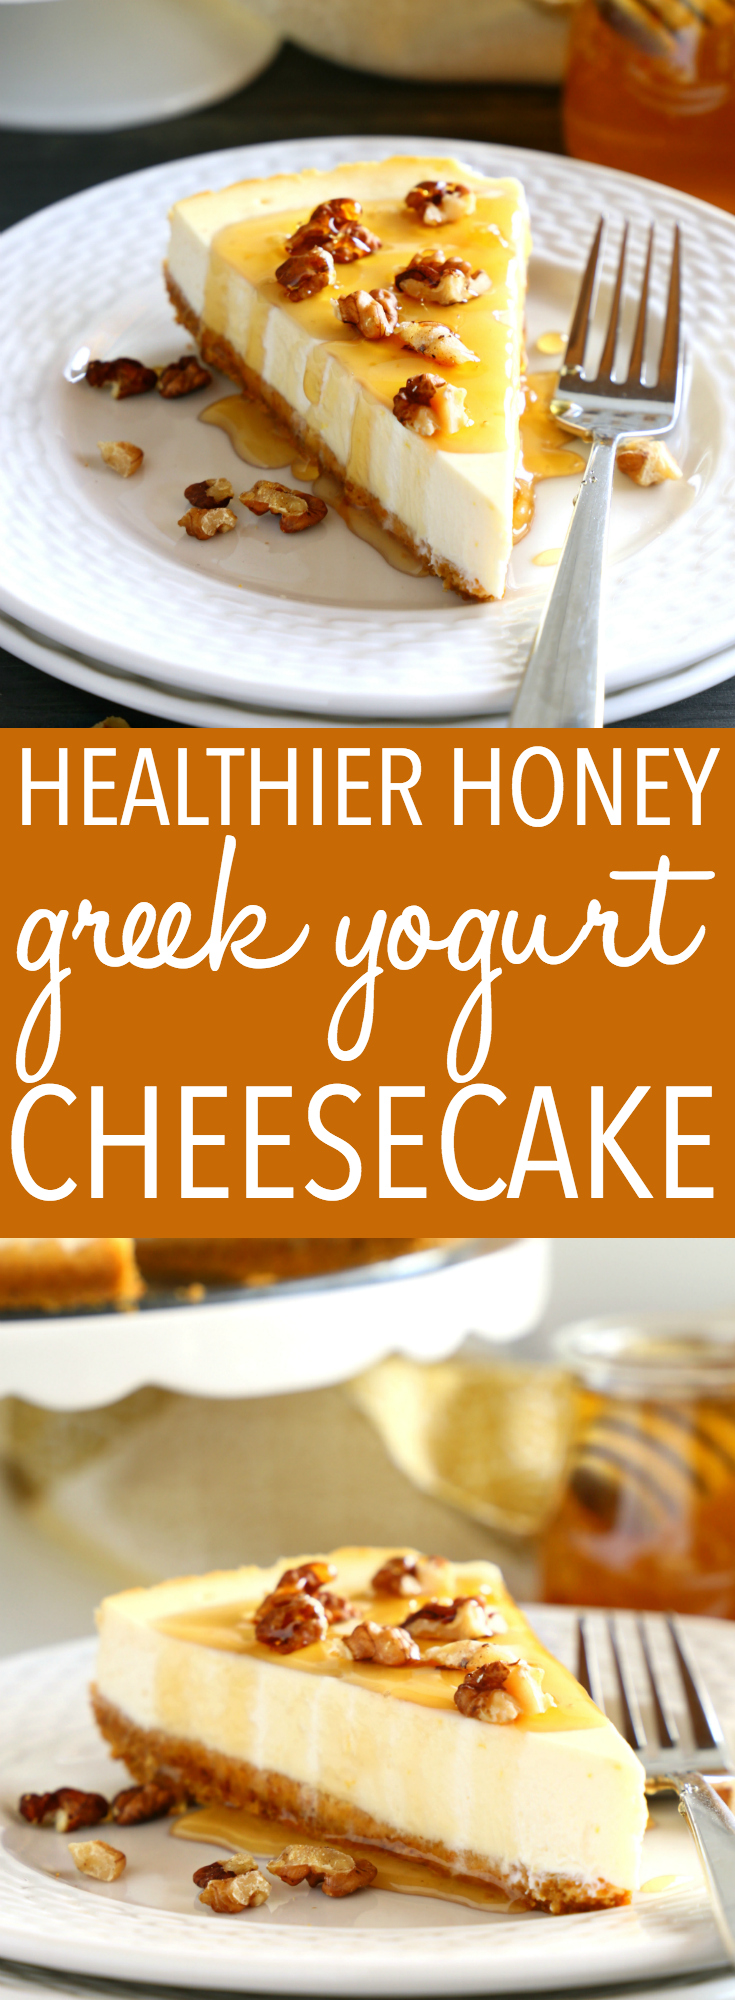 This Healthy Honey Greek Yogurt Cheesecake is the BEST healthy dessert for summer! It's made with low fat ingredients and no refined sugar, and it's under 200 calories per slice! Recipe from thebusybaker.ca! #healthycheesecake #honeyyogurtcheesecake #greekyogurtcheesecake